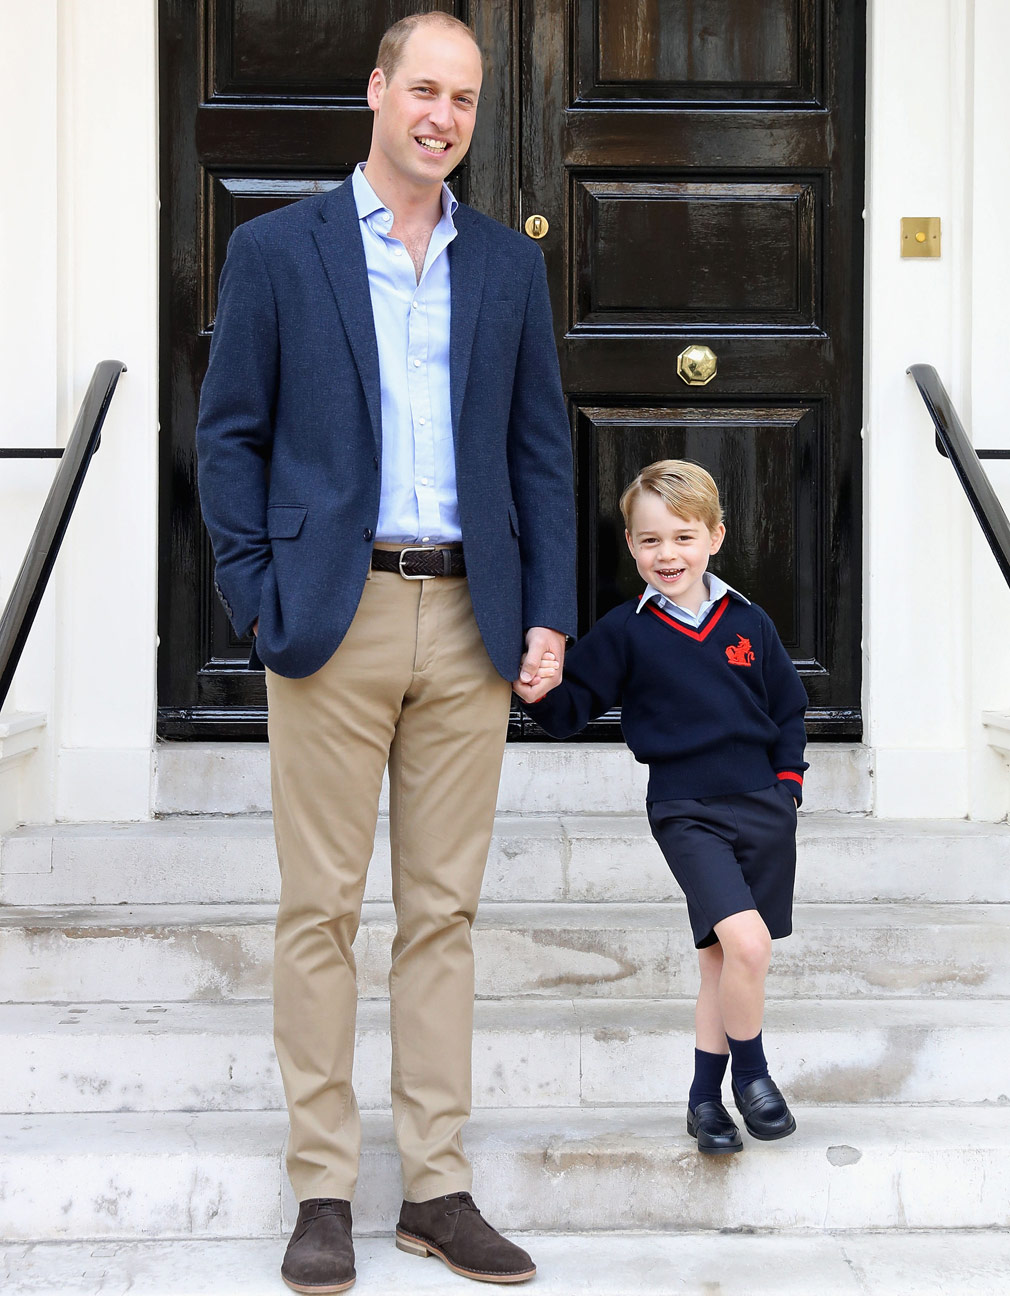 Prince William said George's first day 'went well'. (AAP)